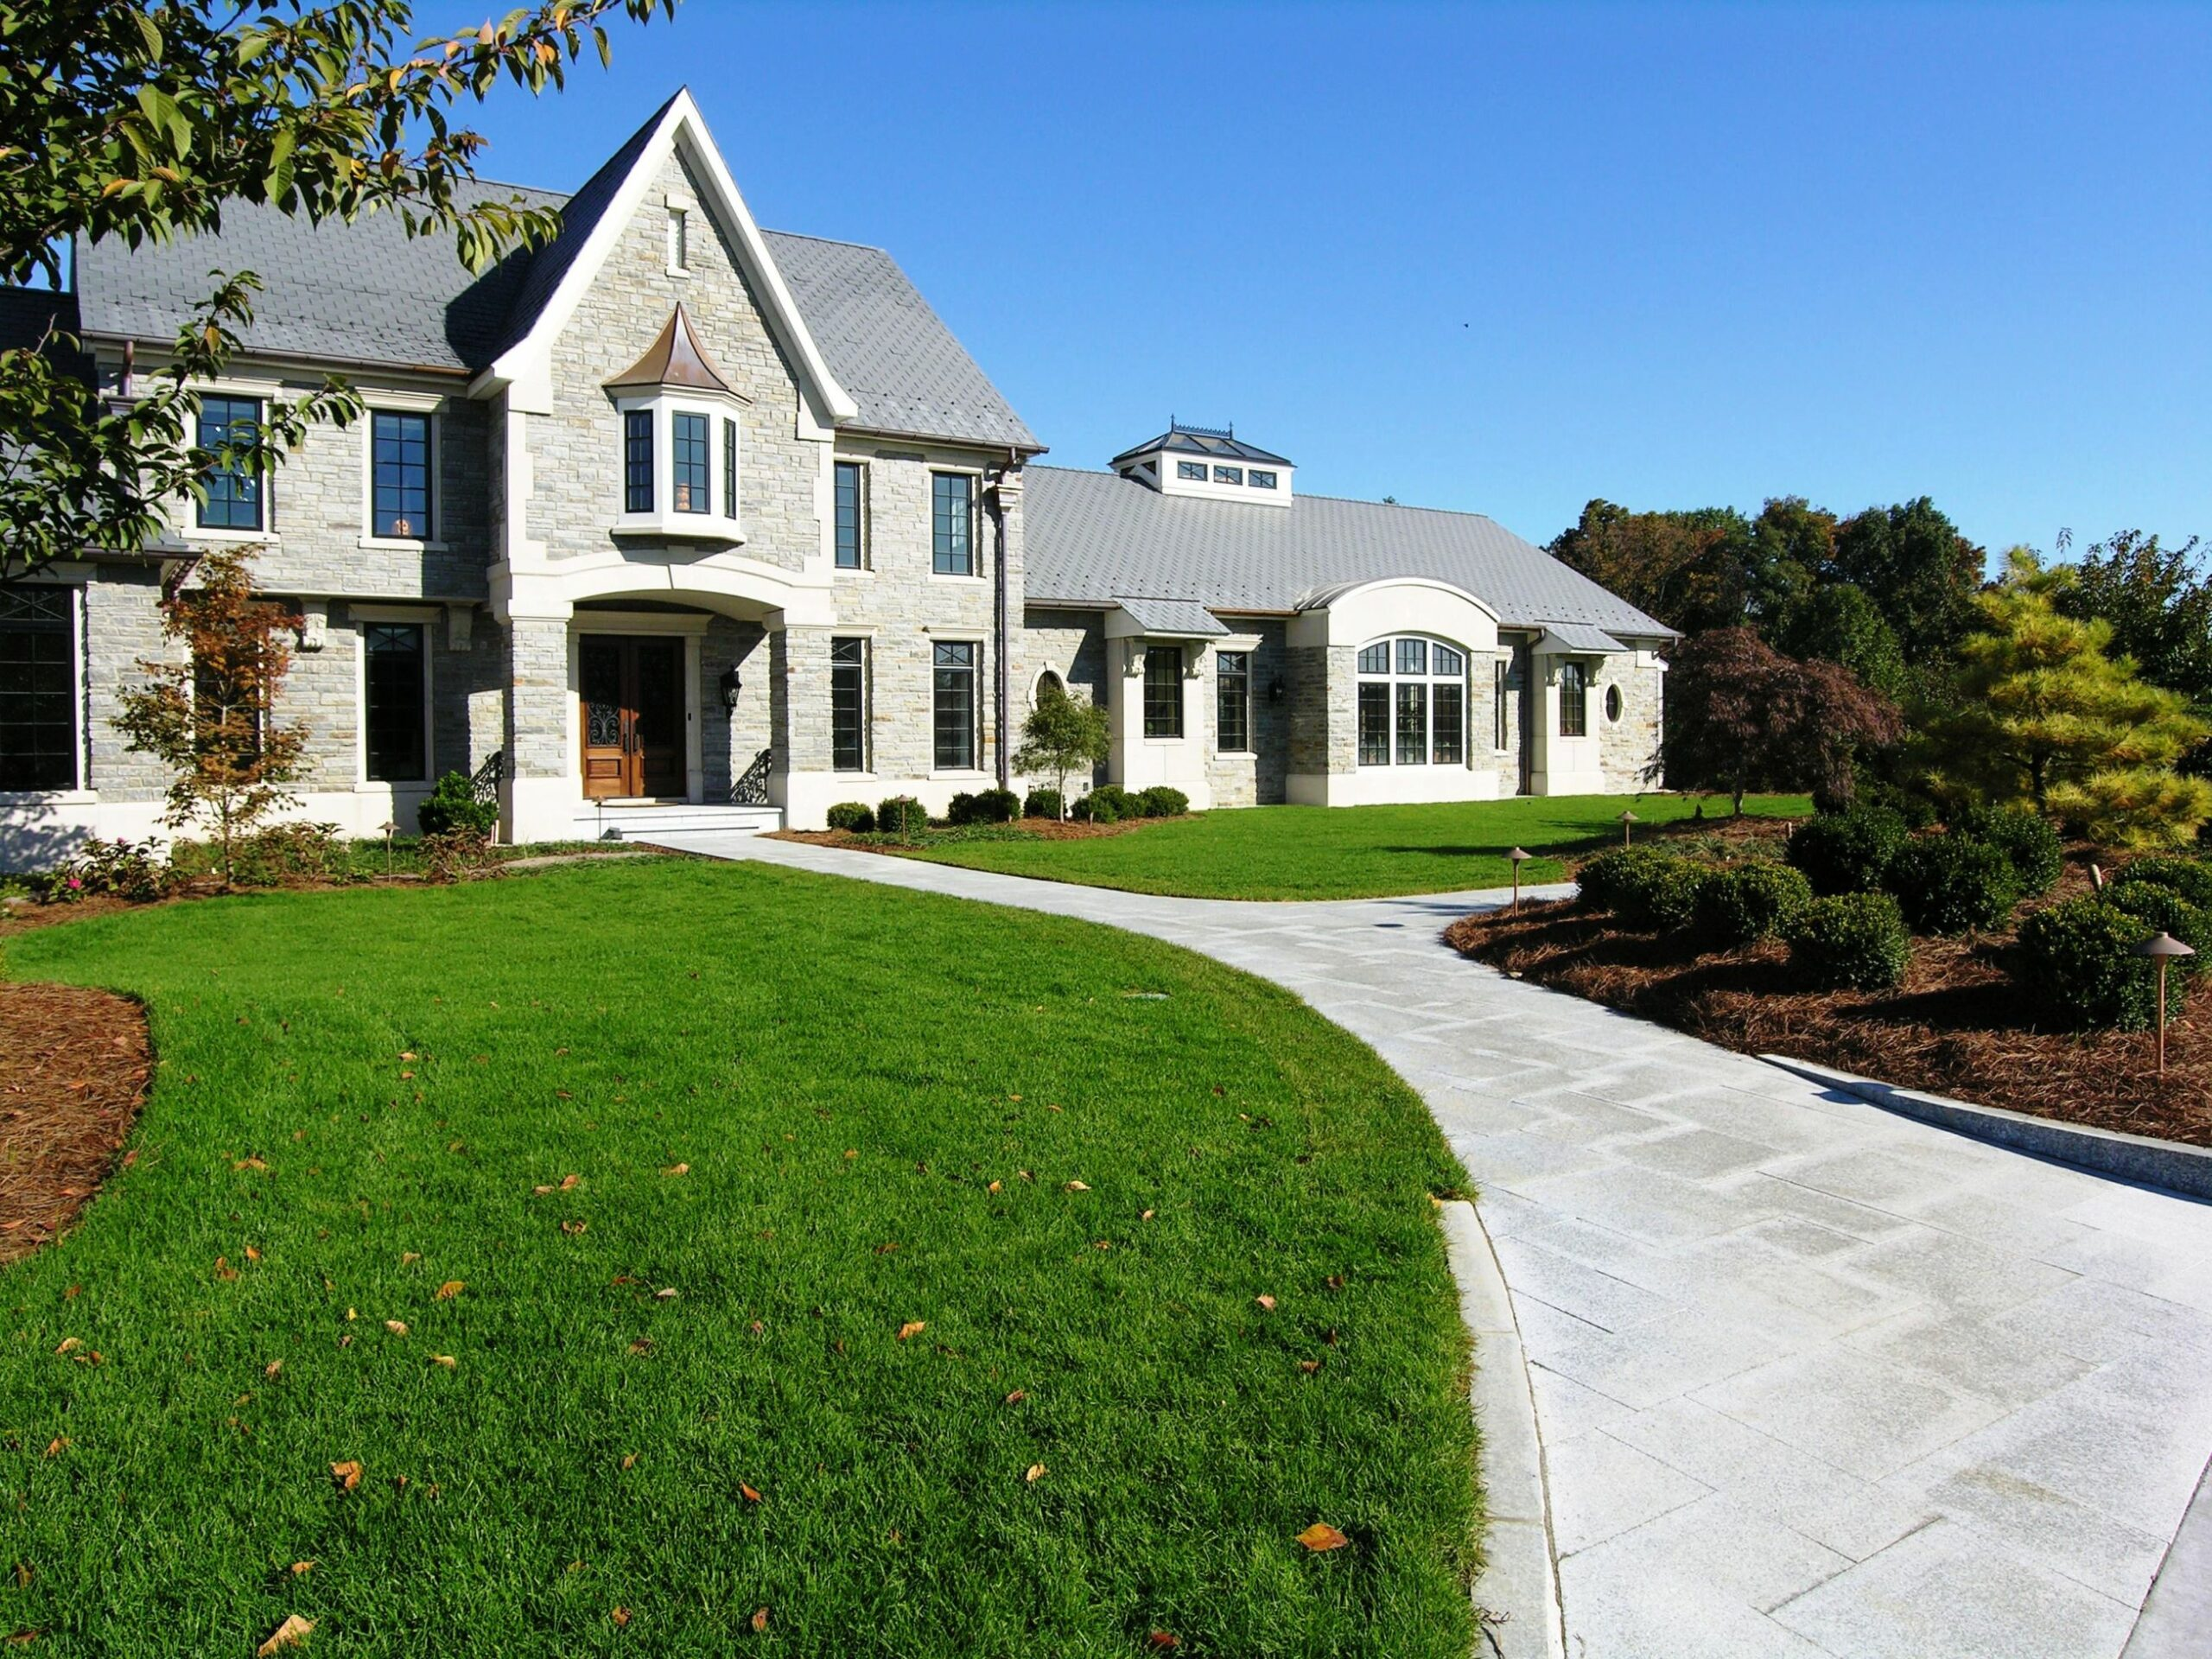 Providing access to care for a house is one of the key design elements, often ignored, Lititz, PA